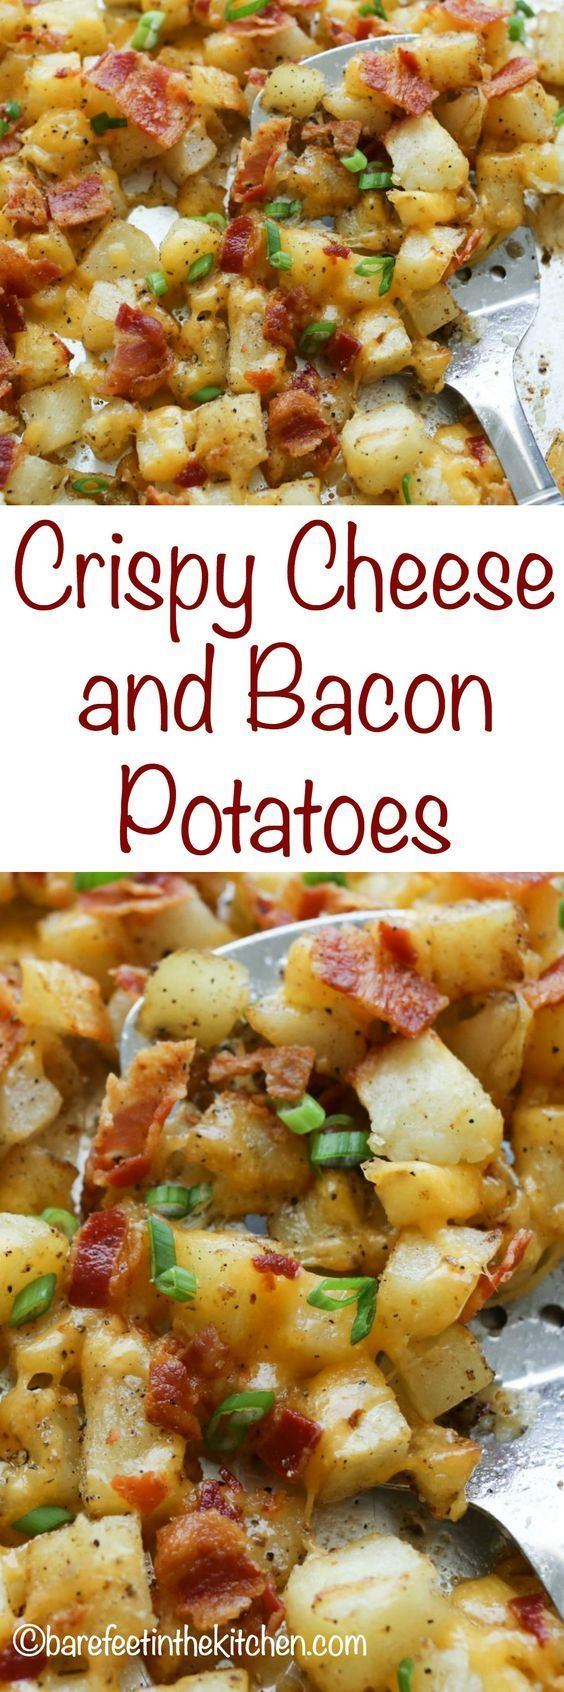 Crispy Cheese and Bacon Potatoes are great for breakfast, lunch, or dinner!